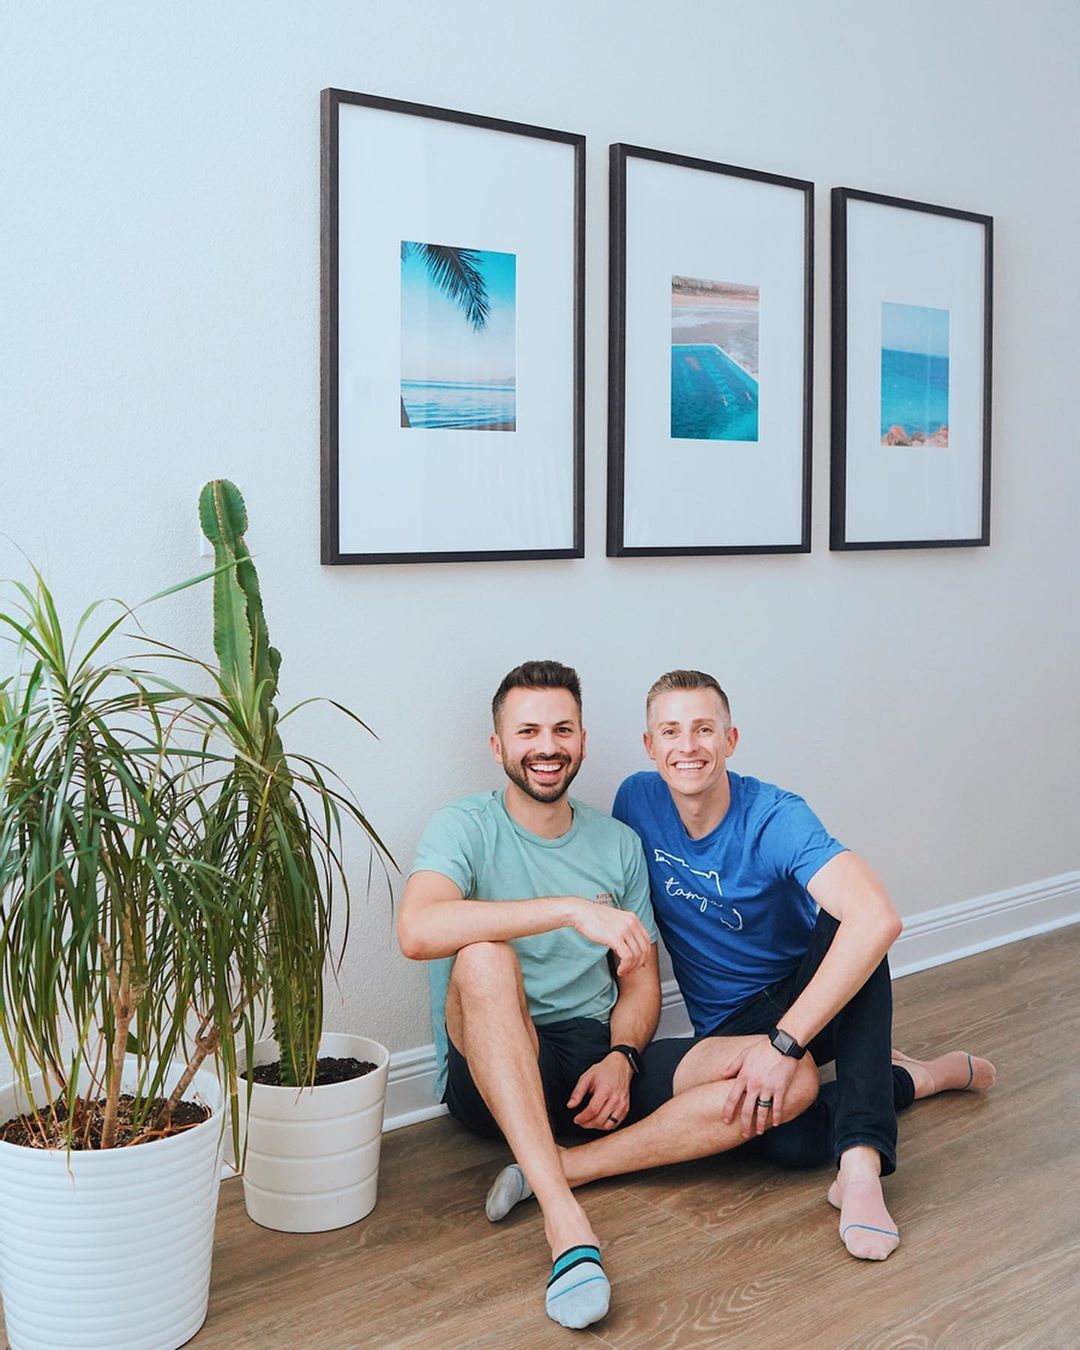 triptych gallery in hallway with two smiling men and a plant